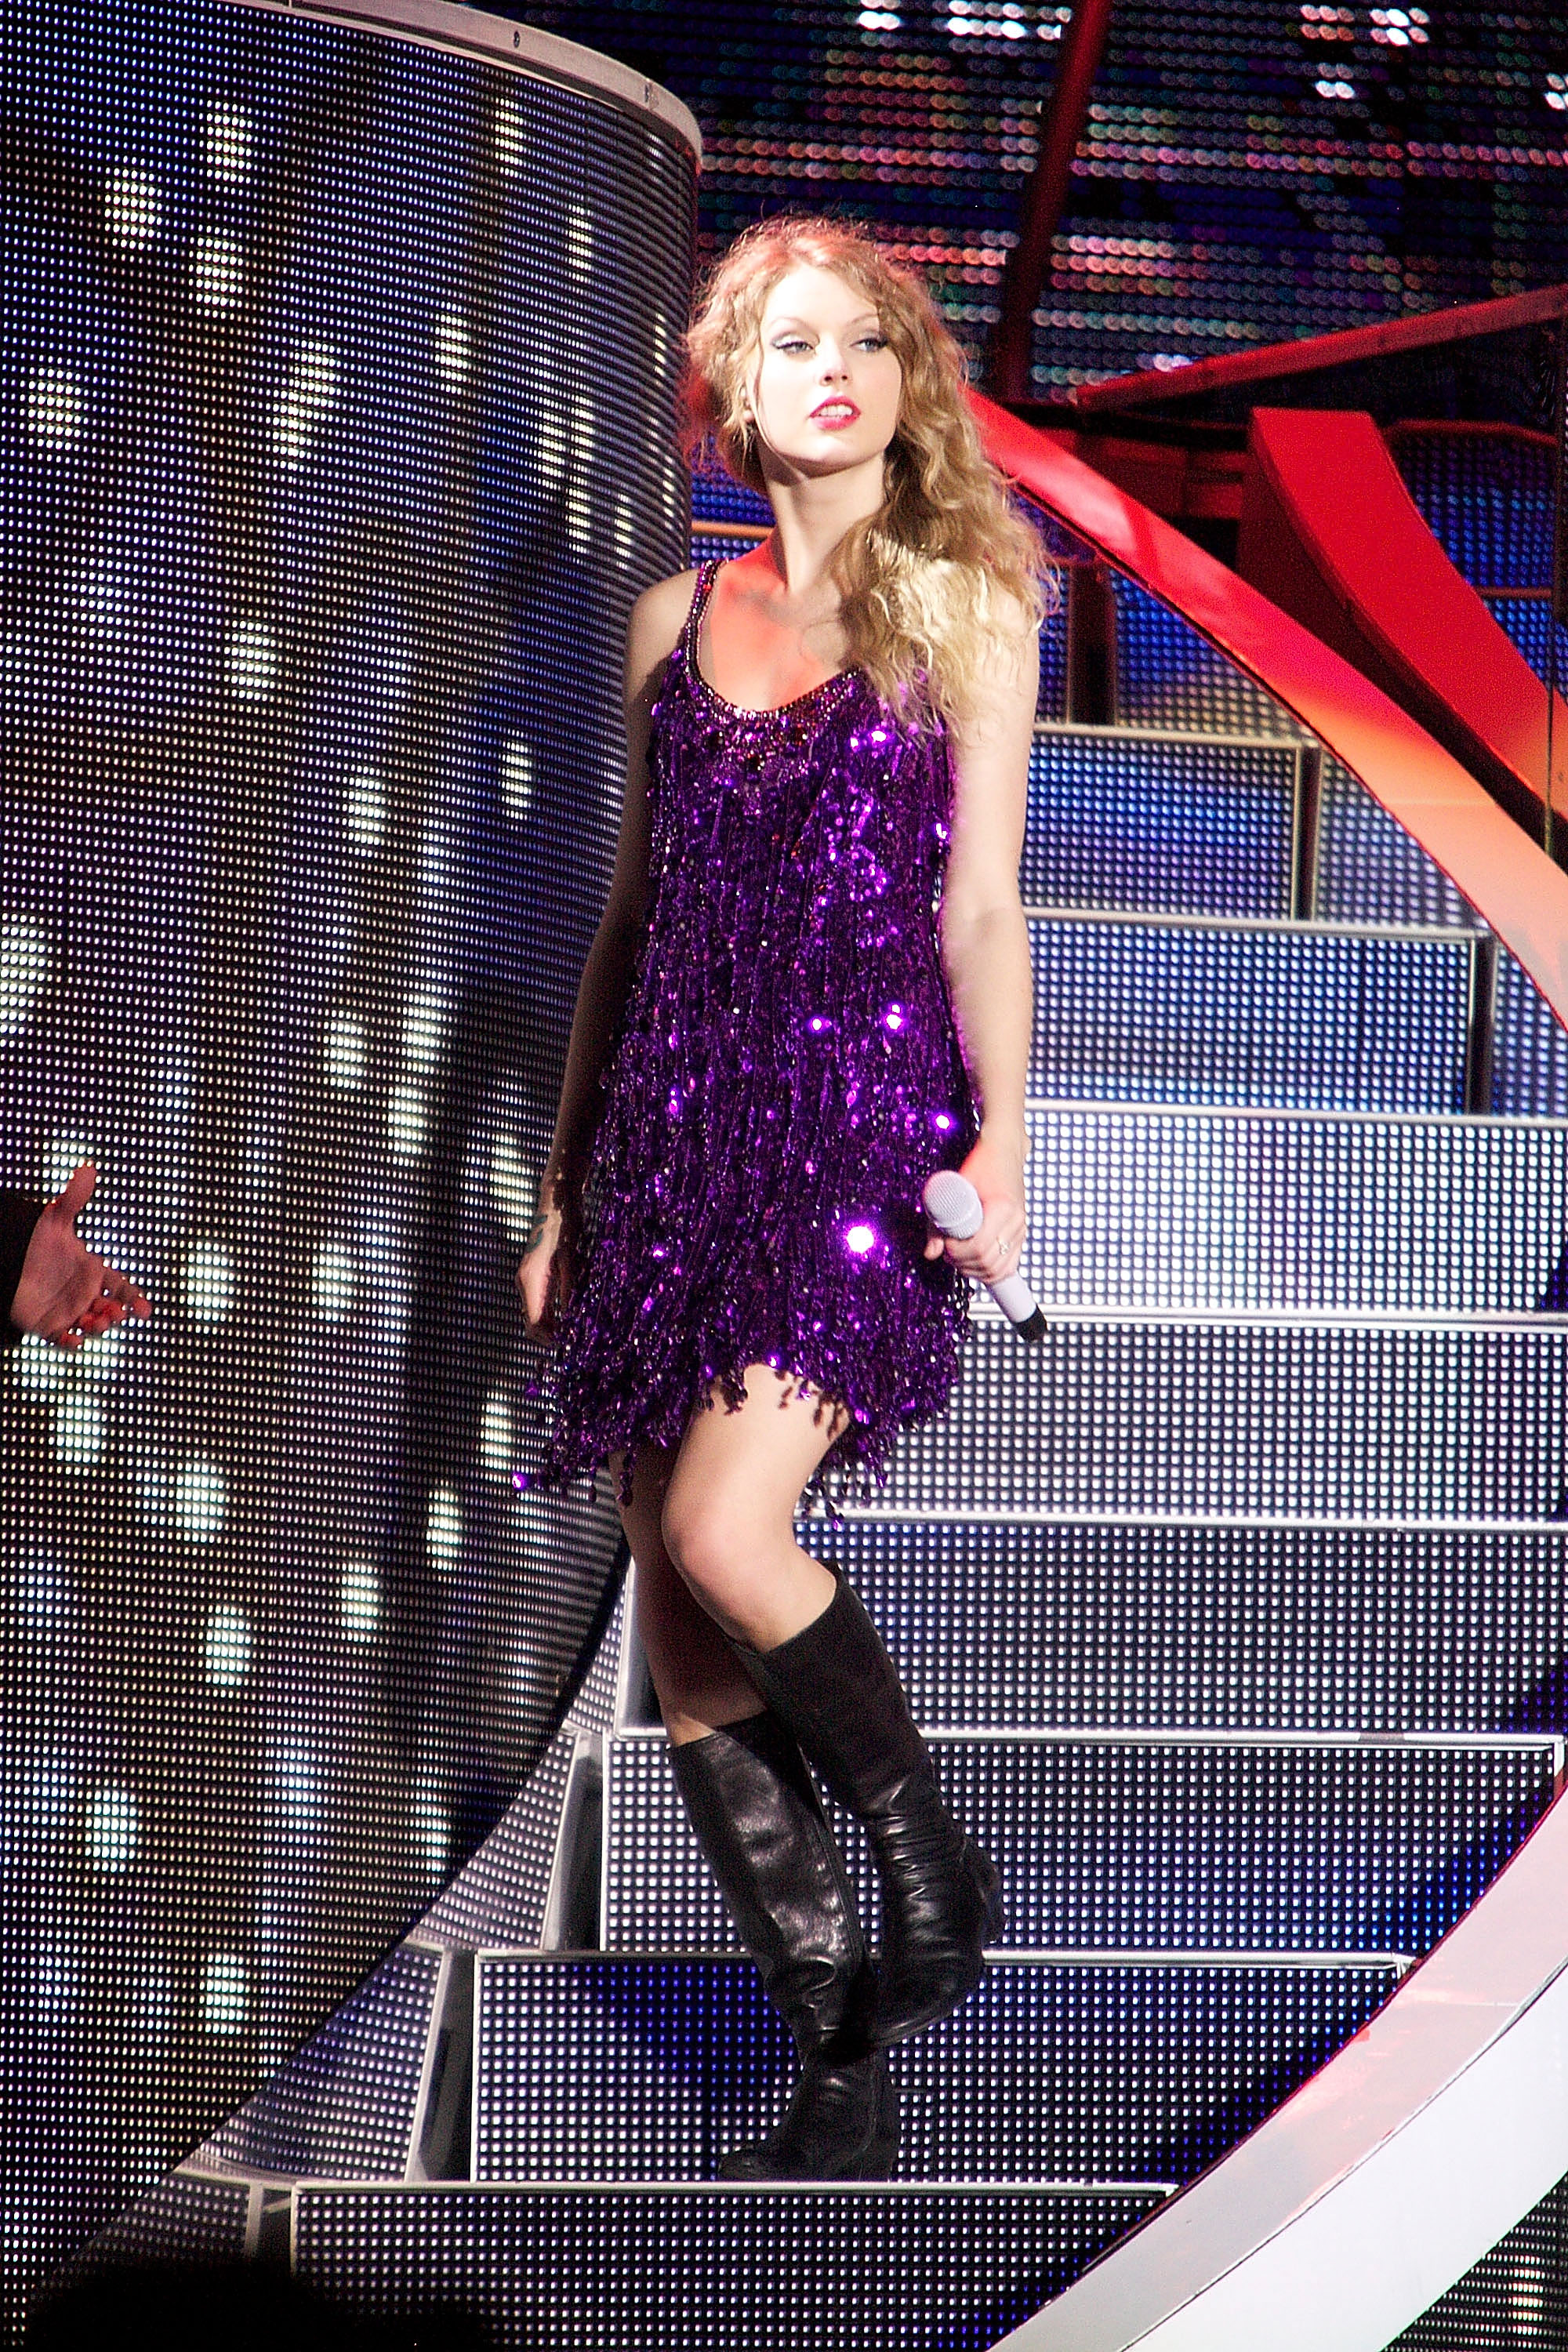 32504_Taylor_swift_performs_her_Fearless_Tour_at_Tiger_Stadium_003_122_440lo.jpg